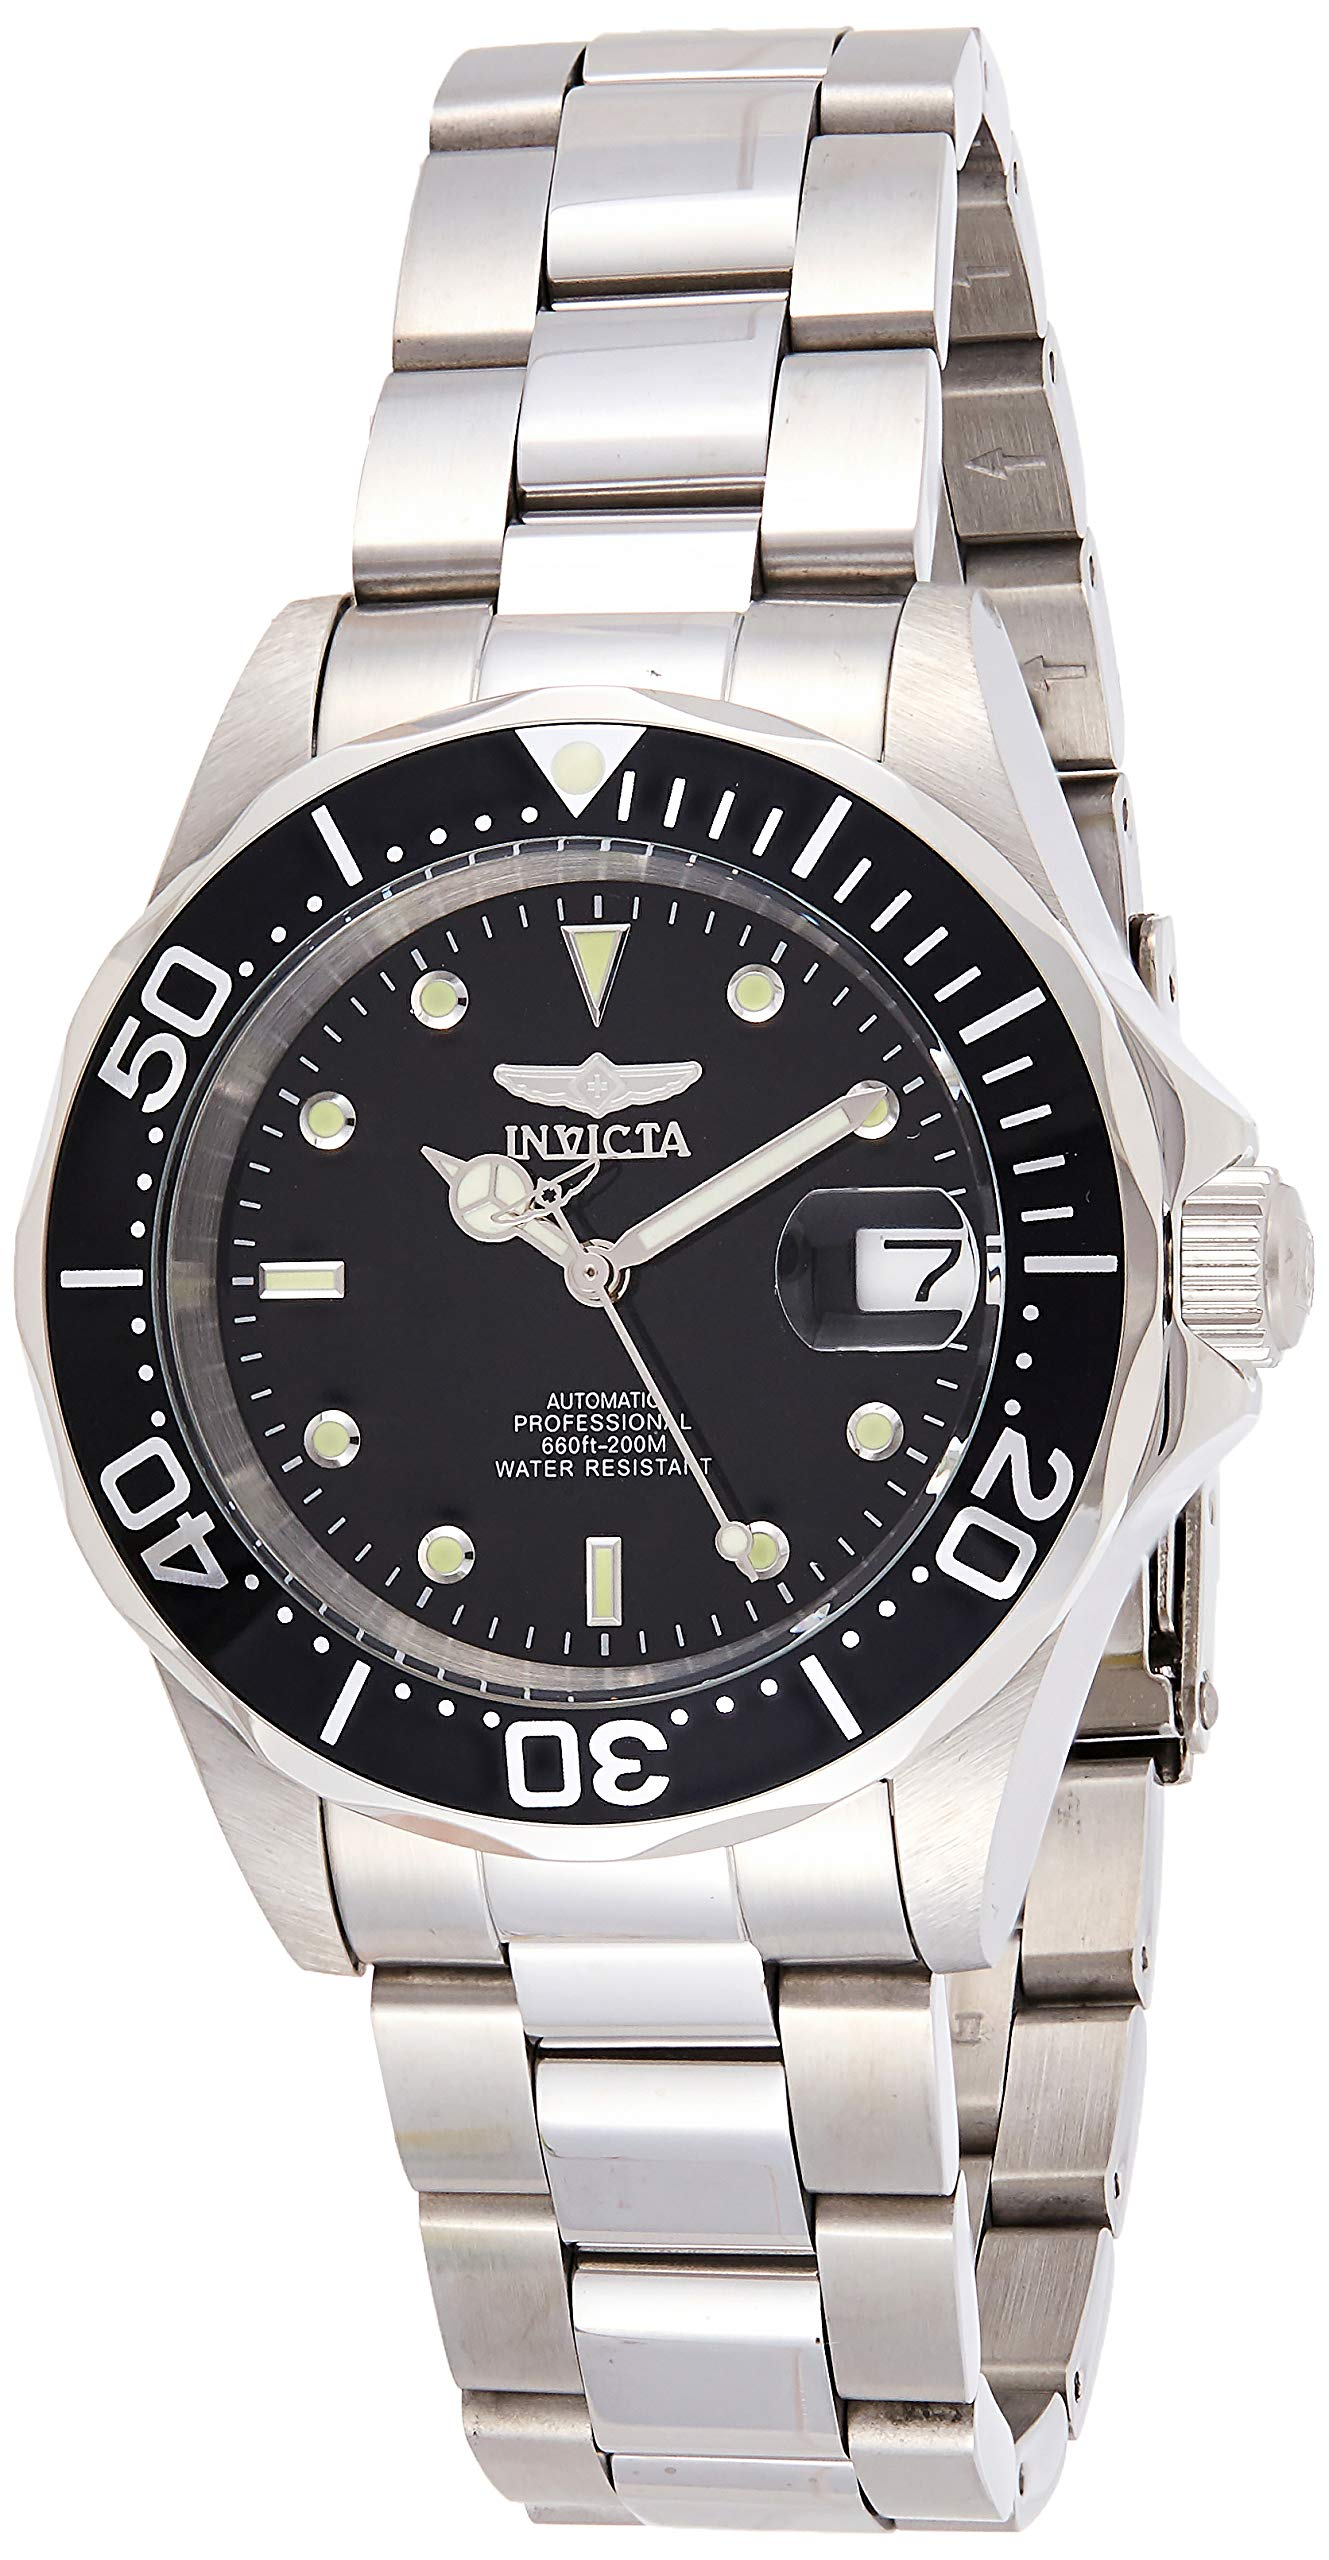 Invicta Men's Pro Diver 40mm Stainless Steel Automatic Watch, Silver (Model: 8926)